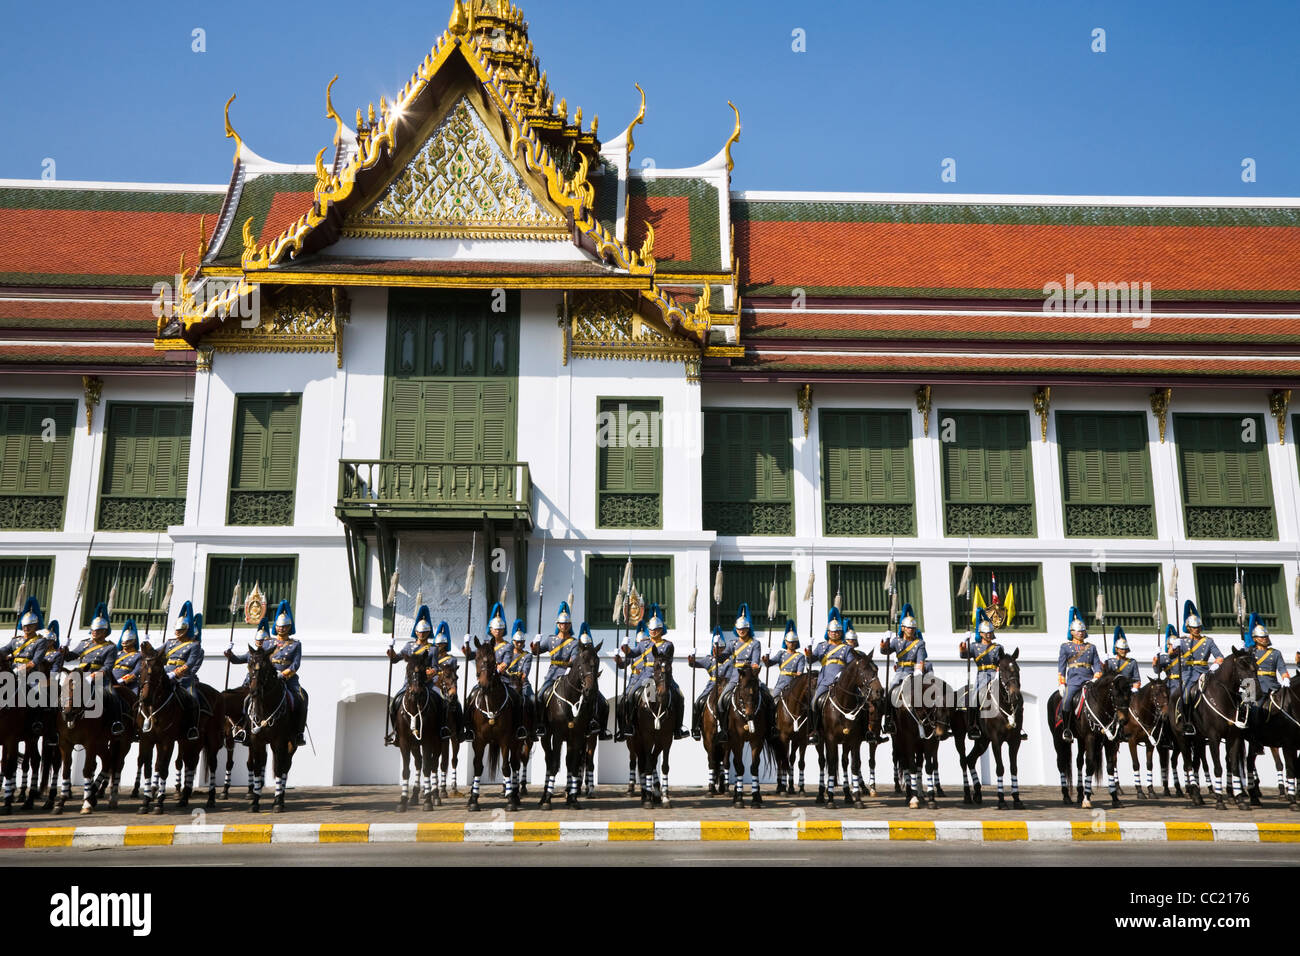 Royal Thai Cavalry at the Grand Palace during the King's 80th birthday celebrations. Bangkok, Thailand - Stock Image